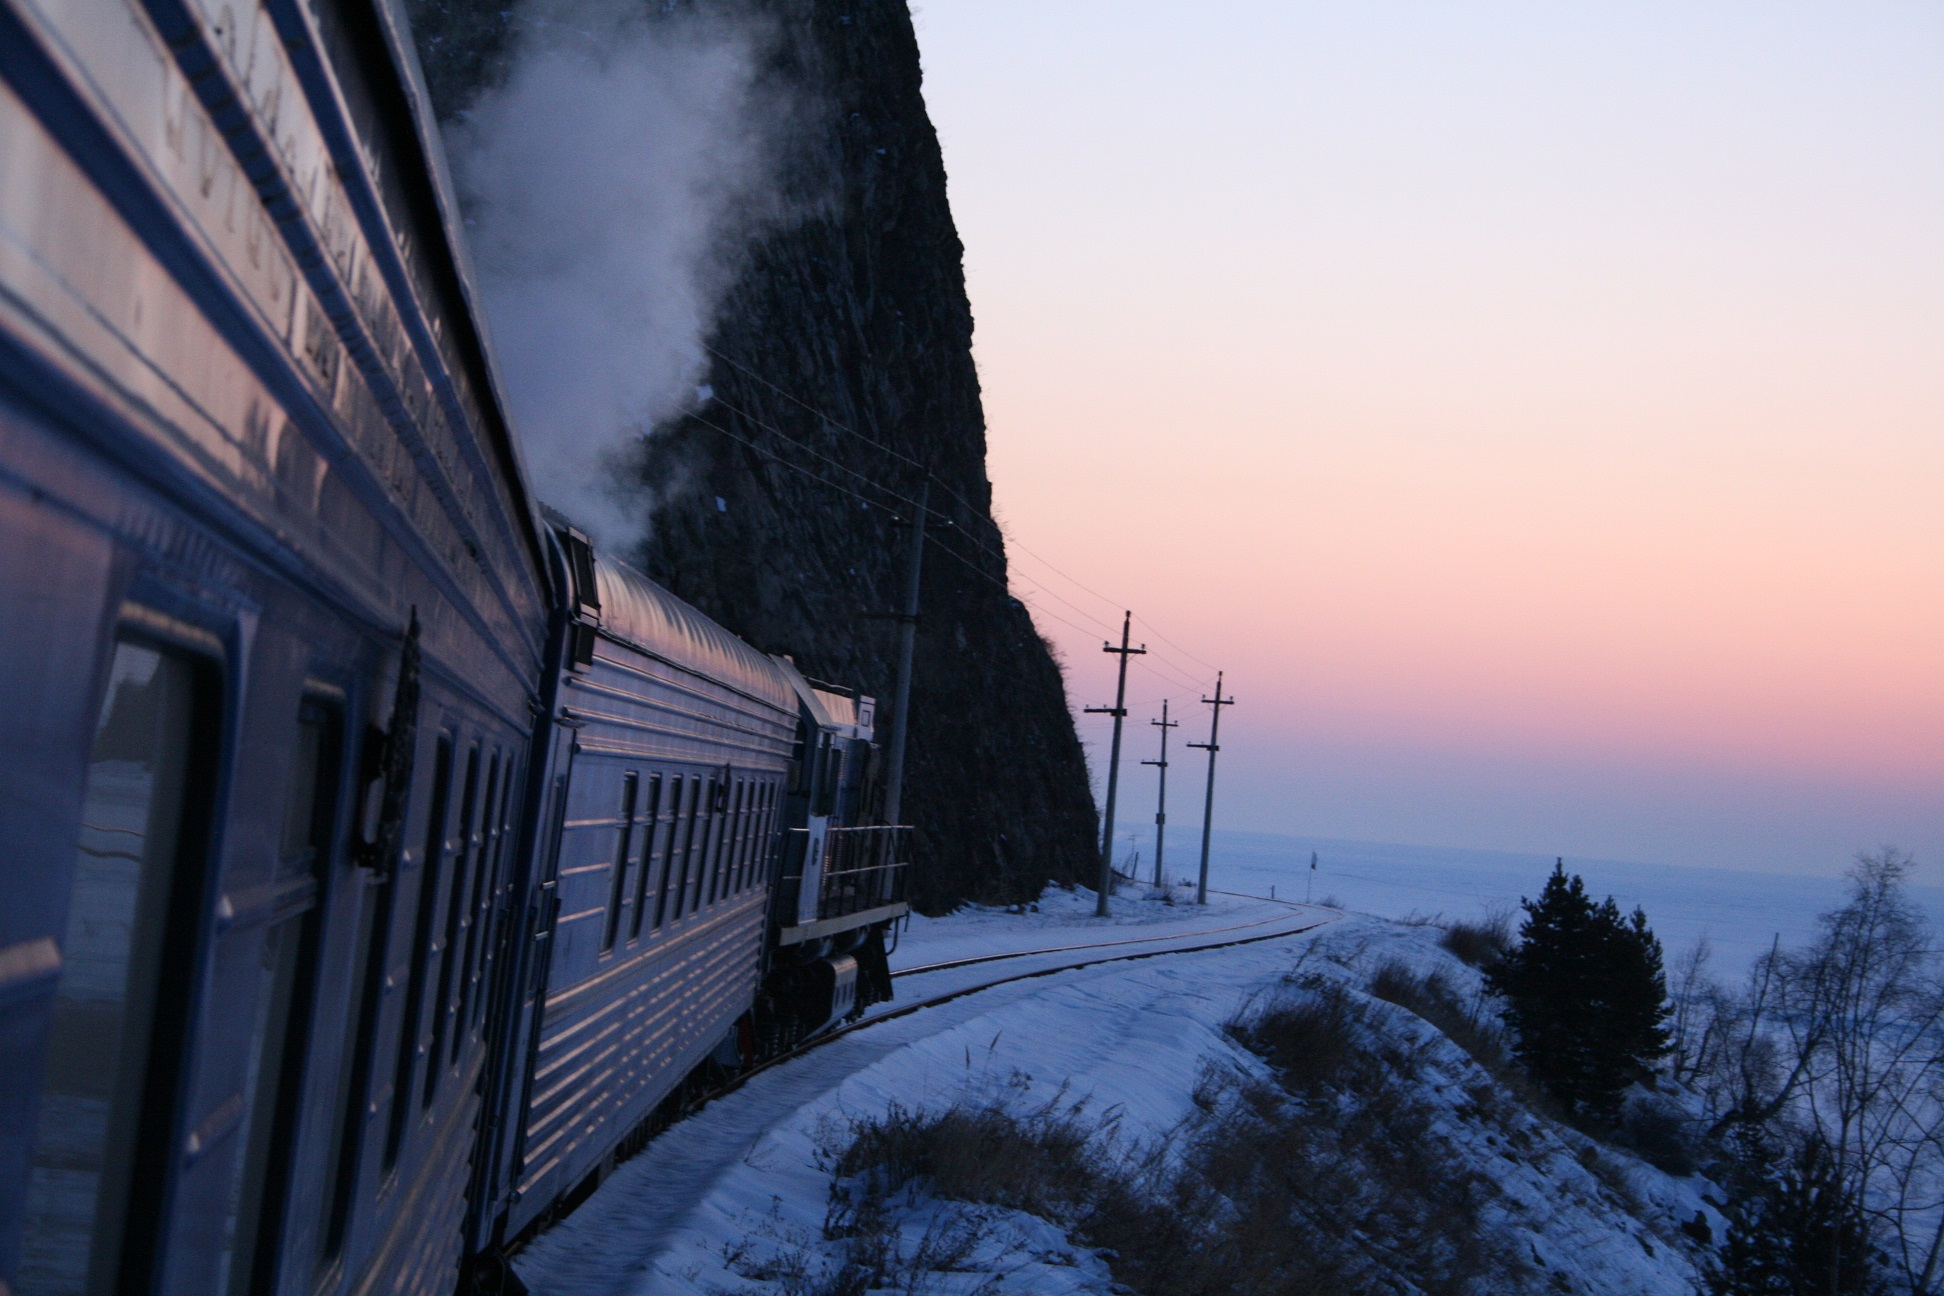 Join the Golden Eagle private train on the Trans-Siberian route